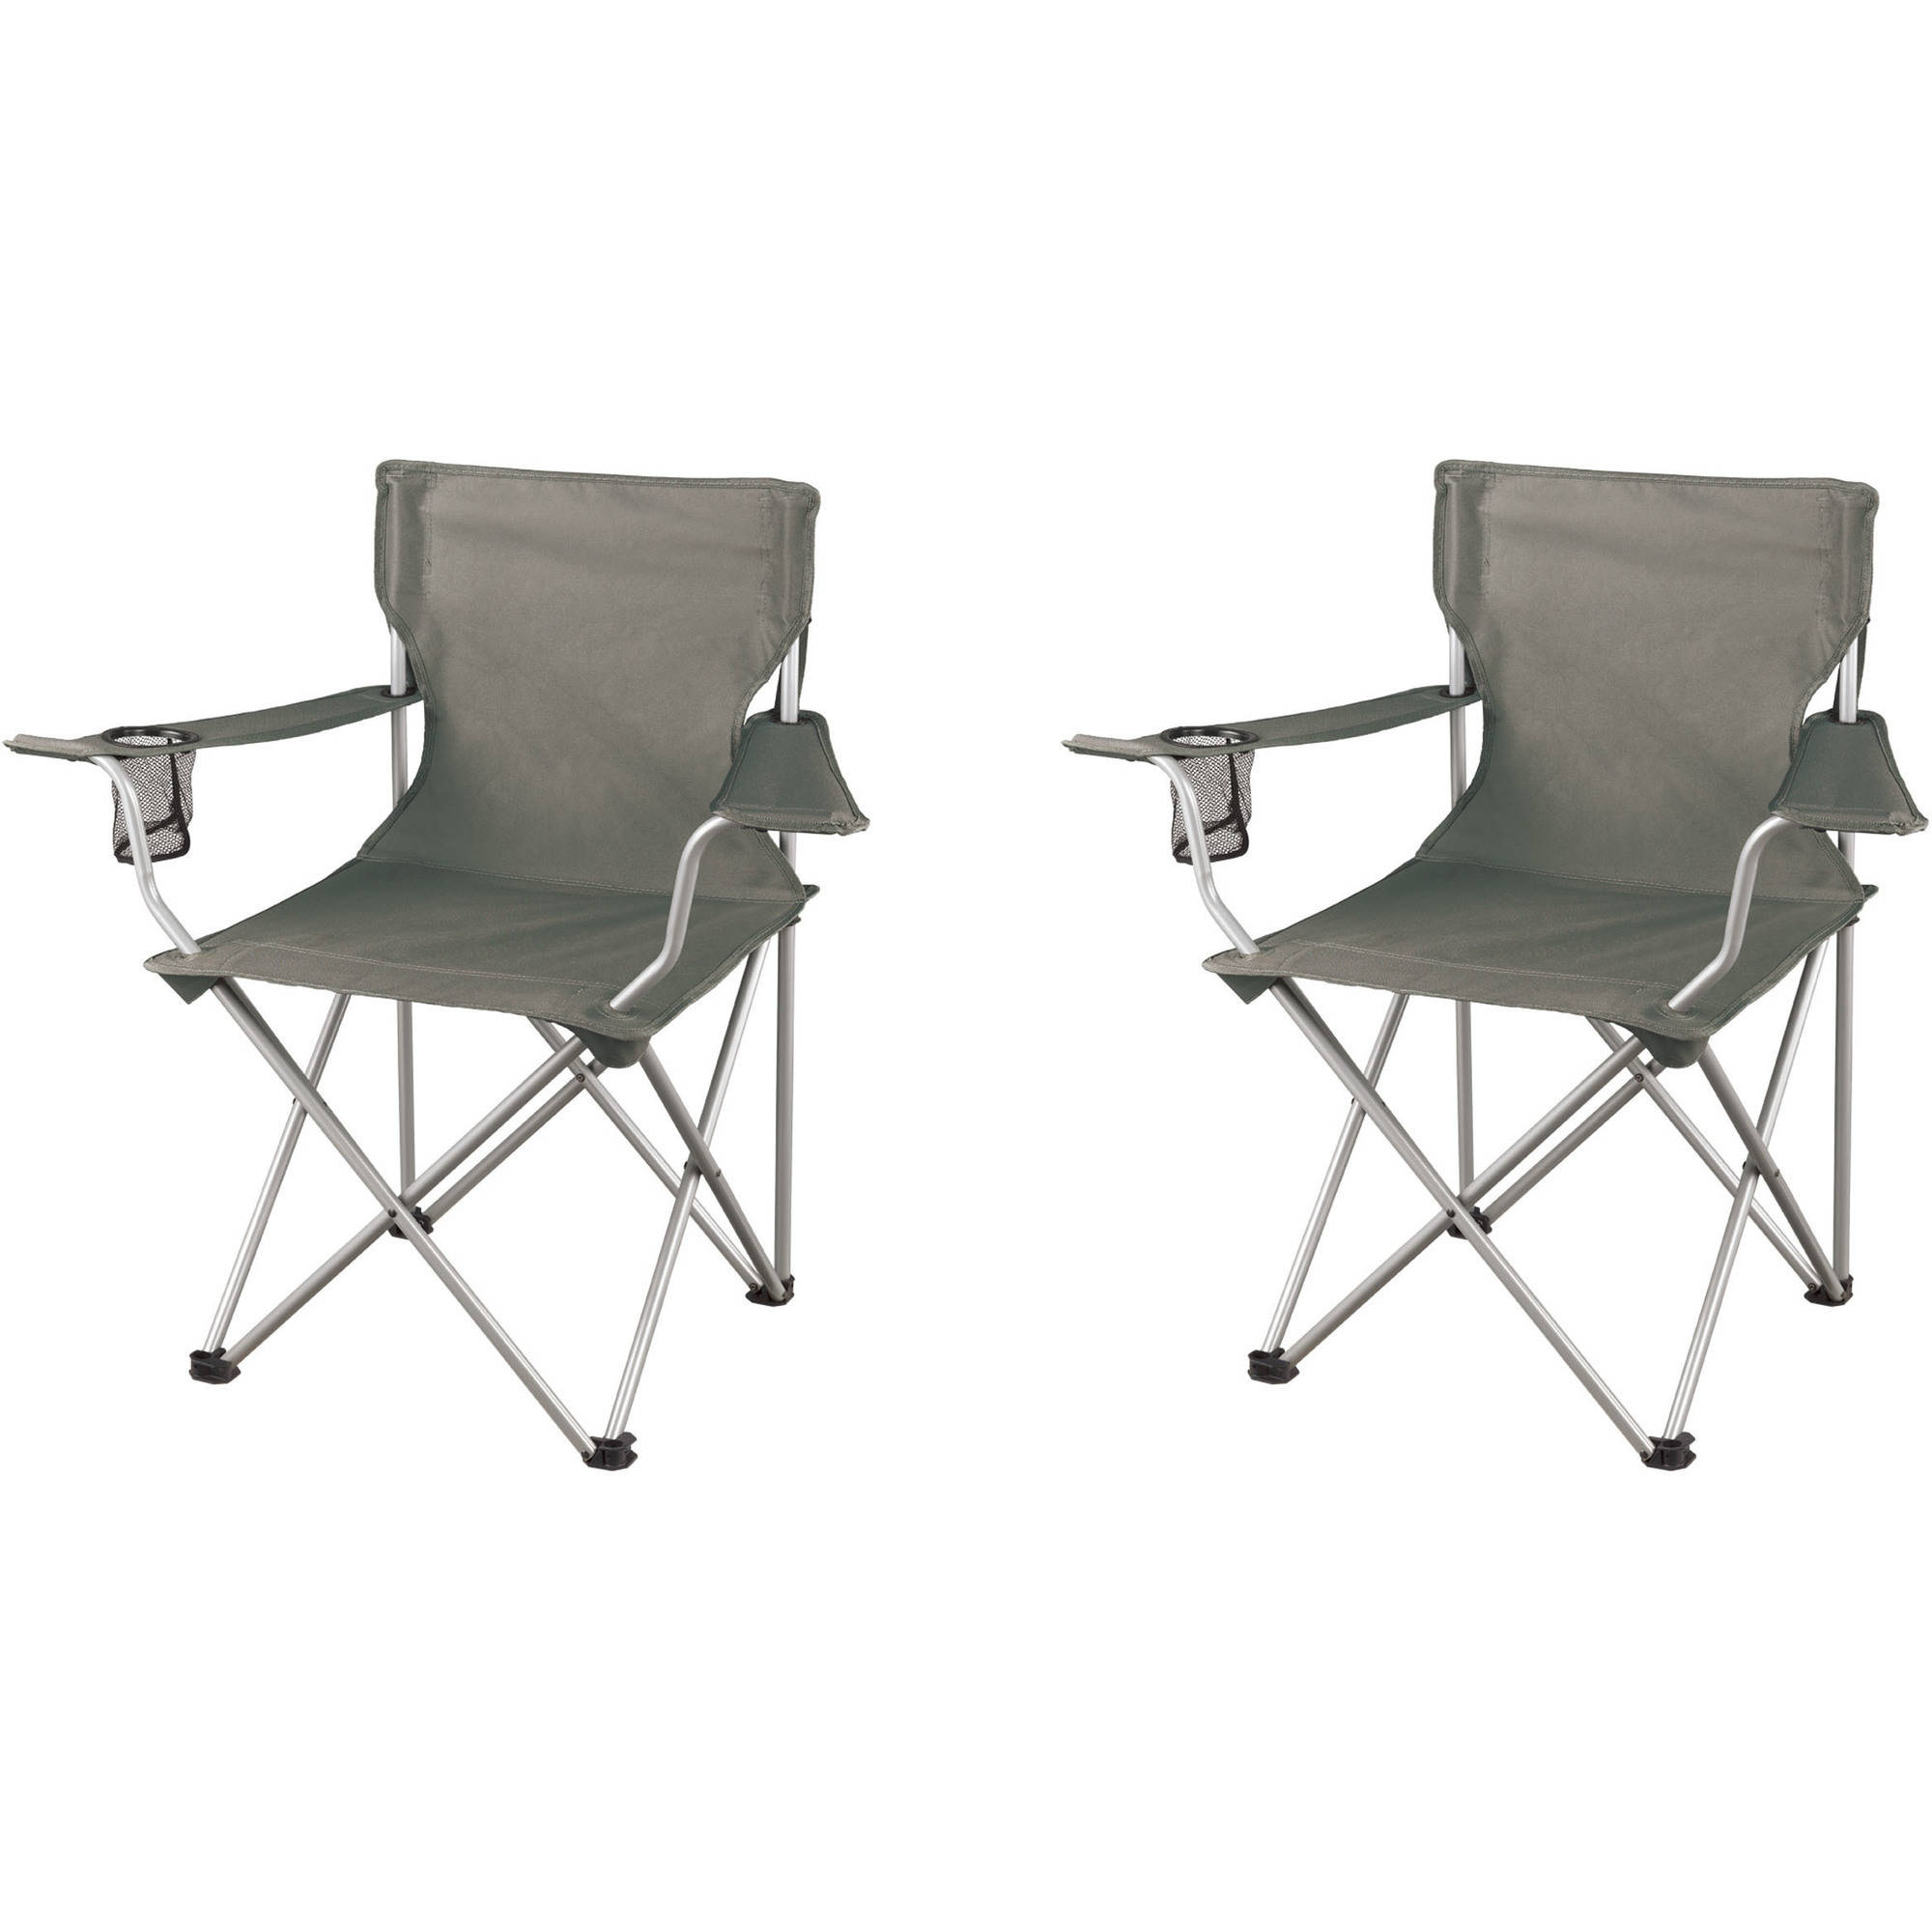 Awesome Ozark Trail Regular Folding Camping Armchairs, Grey, 2 Pack